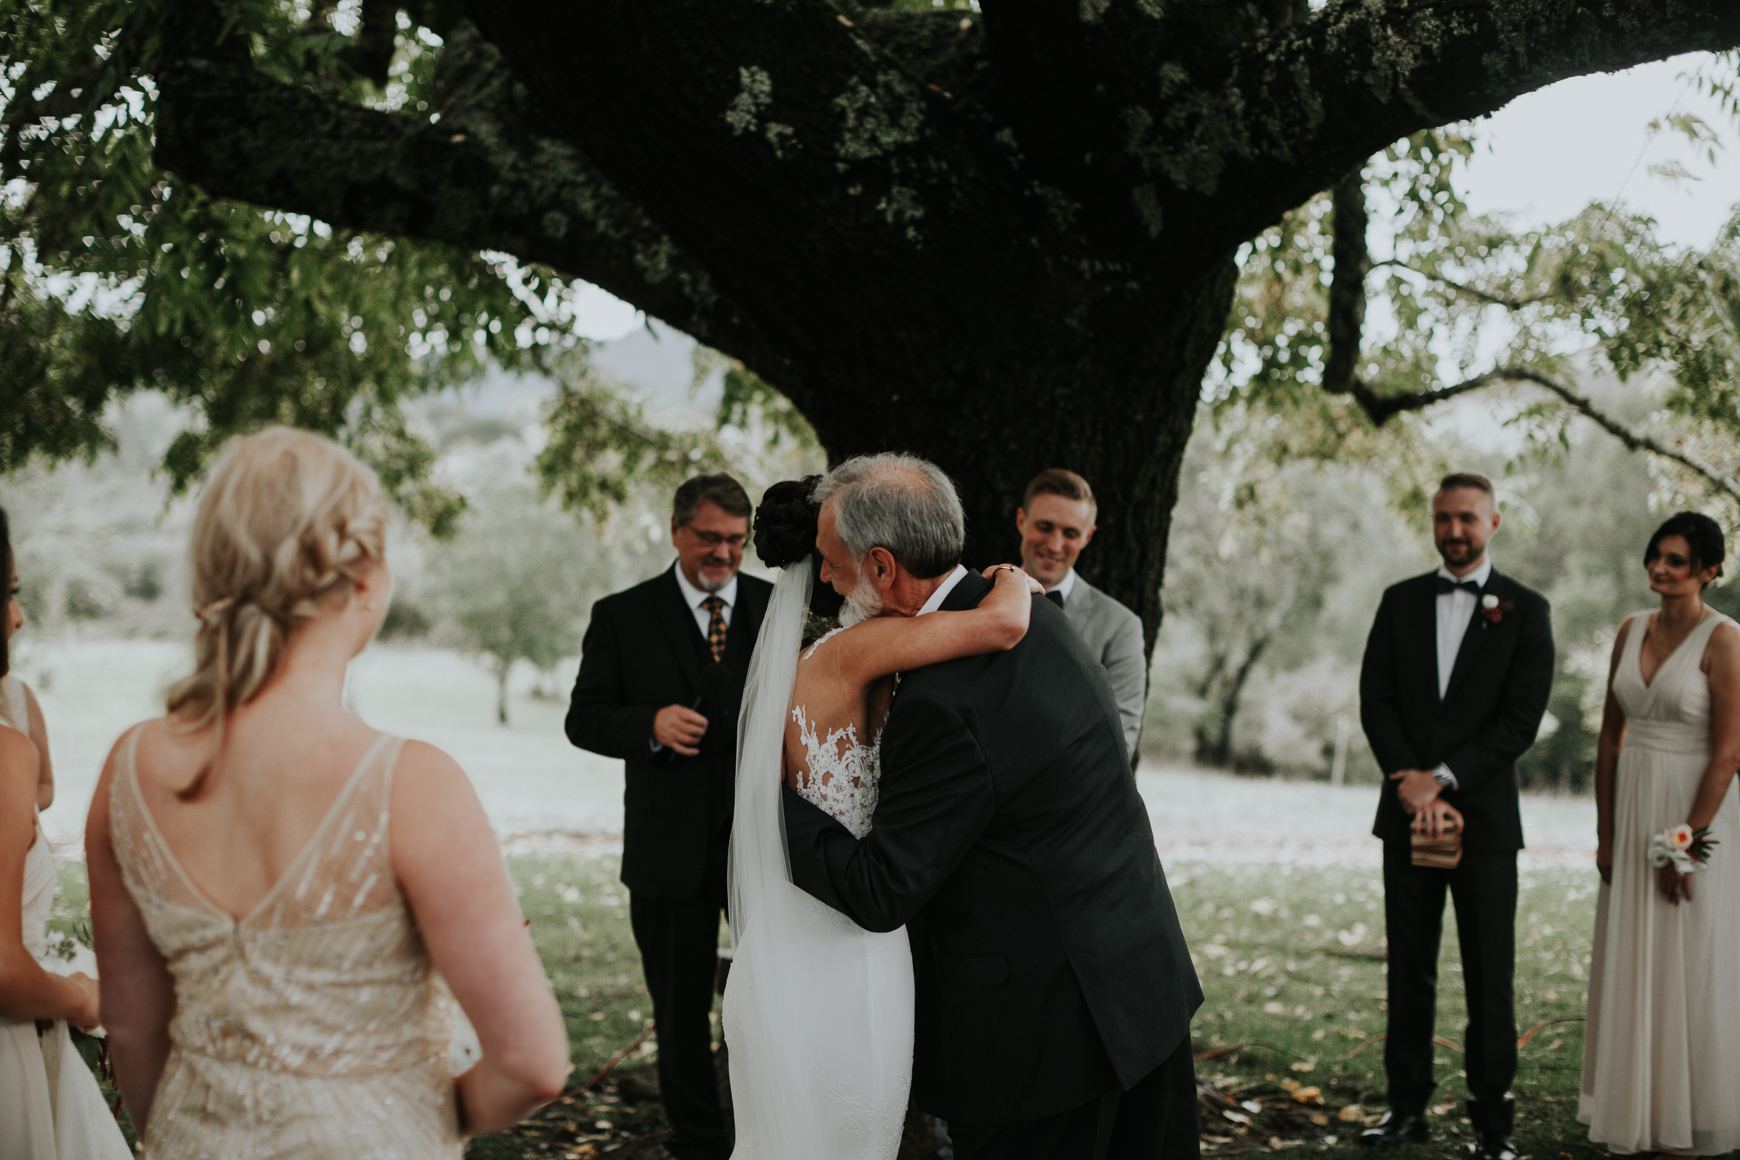 SSS Ranch Wedding Chiara & Jacques Emily Magers Photography-696.jpg